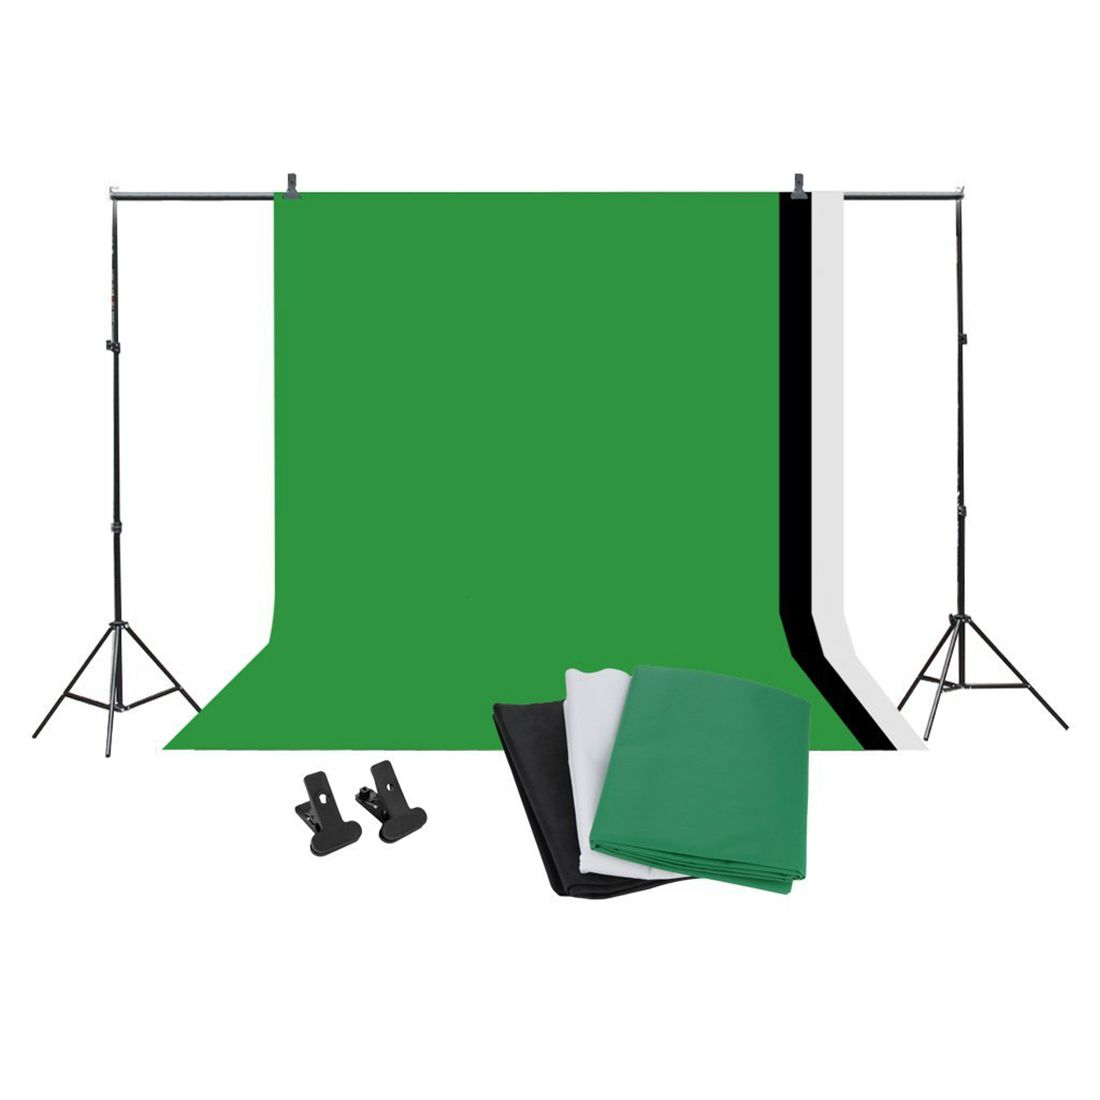 Professional Studio Background Stand Kit - 10x6.5ft Photo Backdrop Support Stand Kit + Backdrop Screen (Black,Green,White)Professional Studio Background Stand Kit - 10x6.5ft Photo Backdrop Support Stand Kit + Backdrop Screen (Black,Green,White)